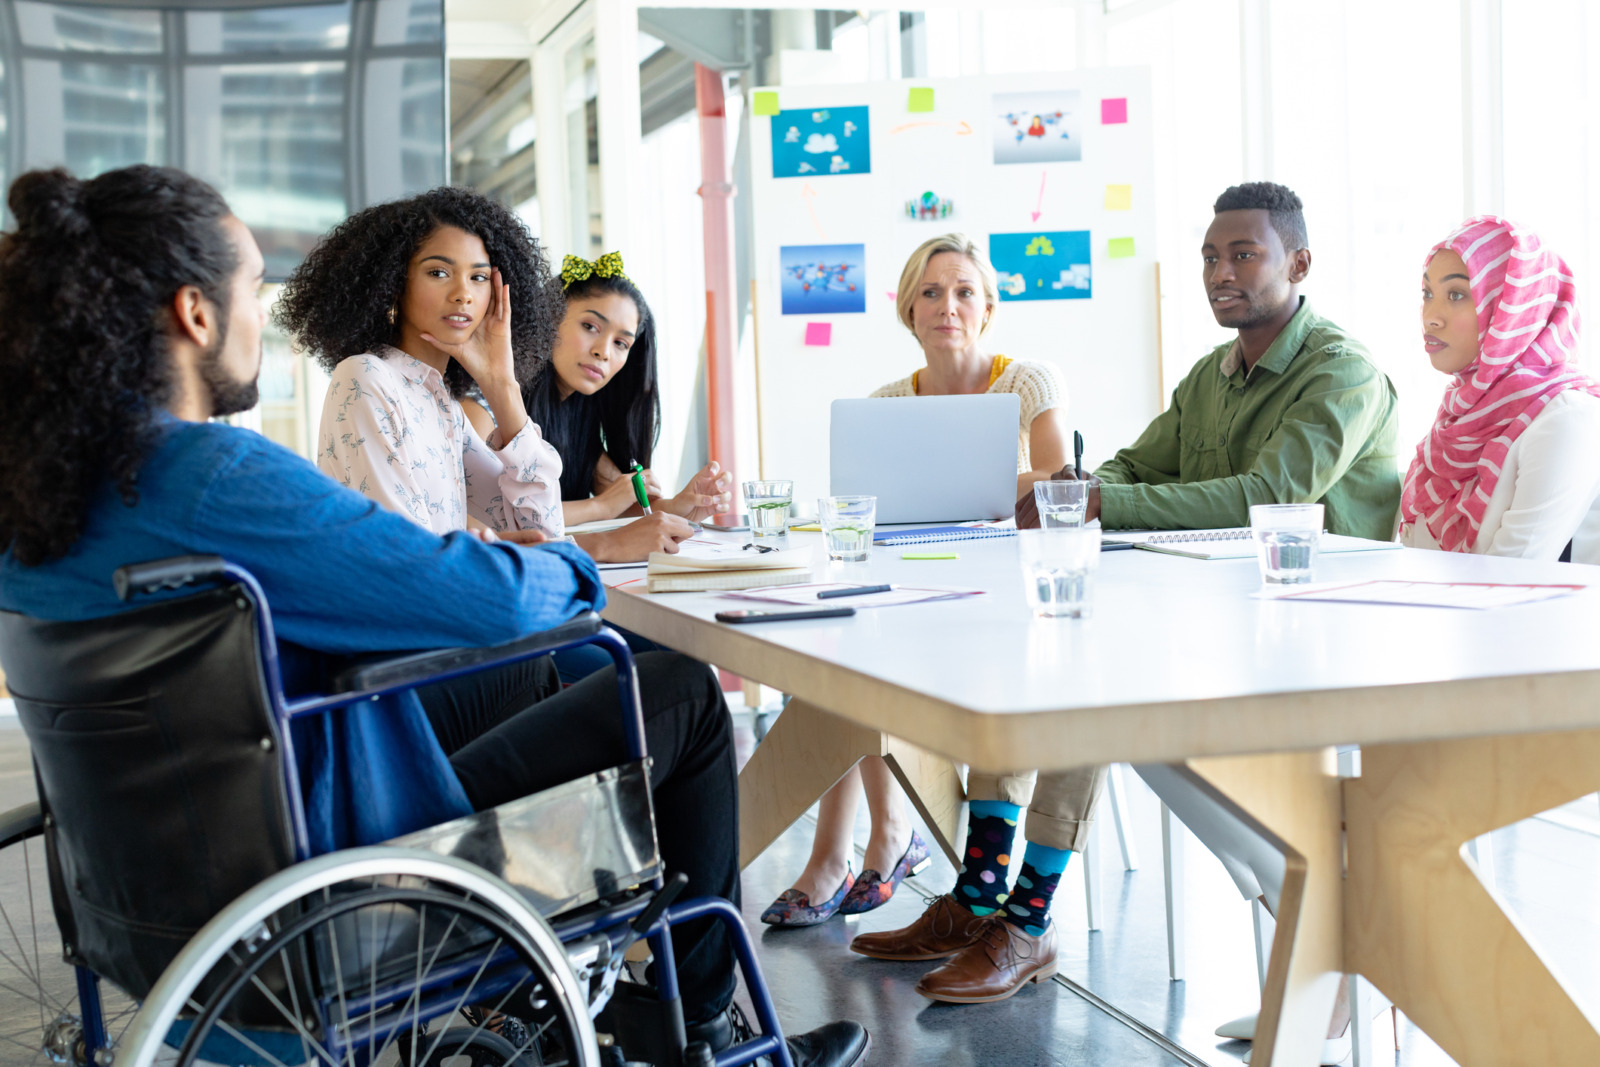 4 Examples of Workplace Diversity